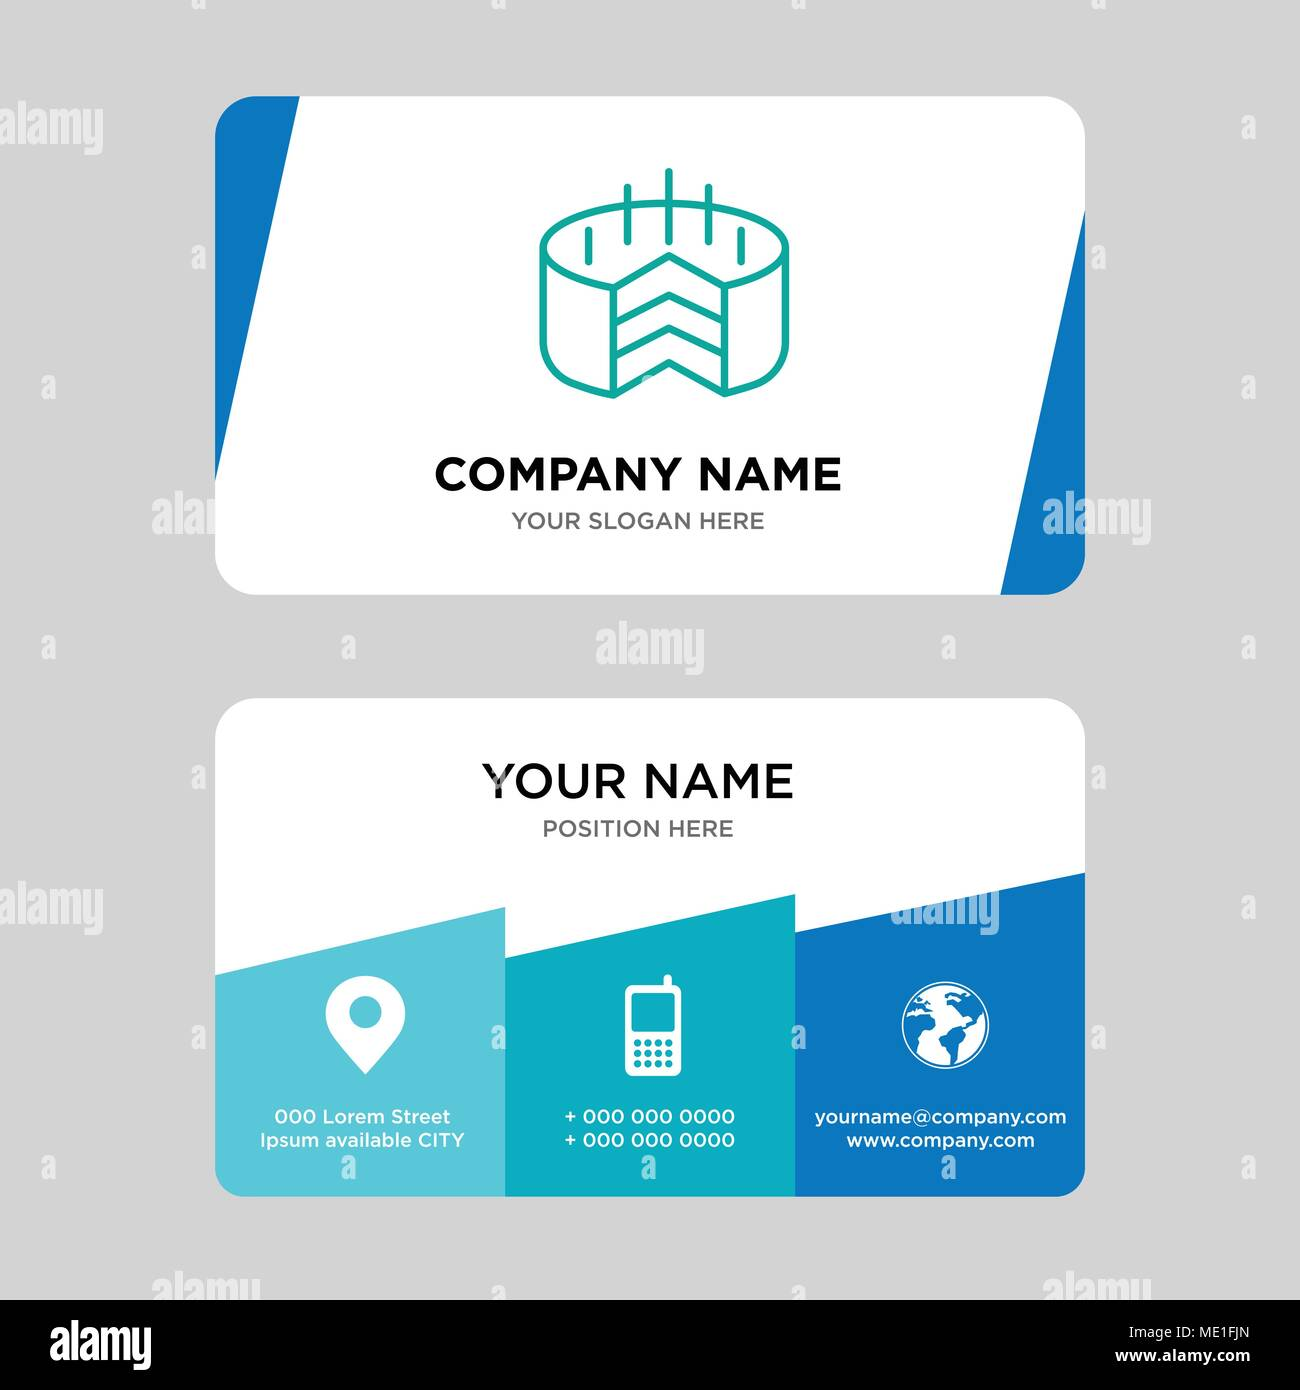 Folder connected circuit business card design template visiting for folder connected circuit business card design template visiting for your company modern creative and clean identity card vector illustration colourmoves